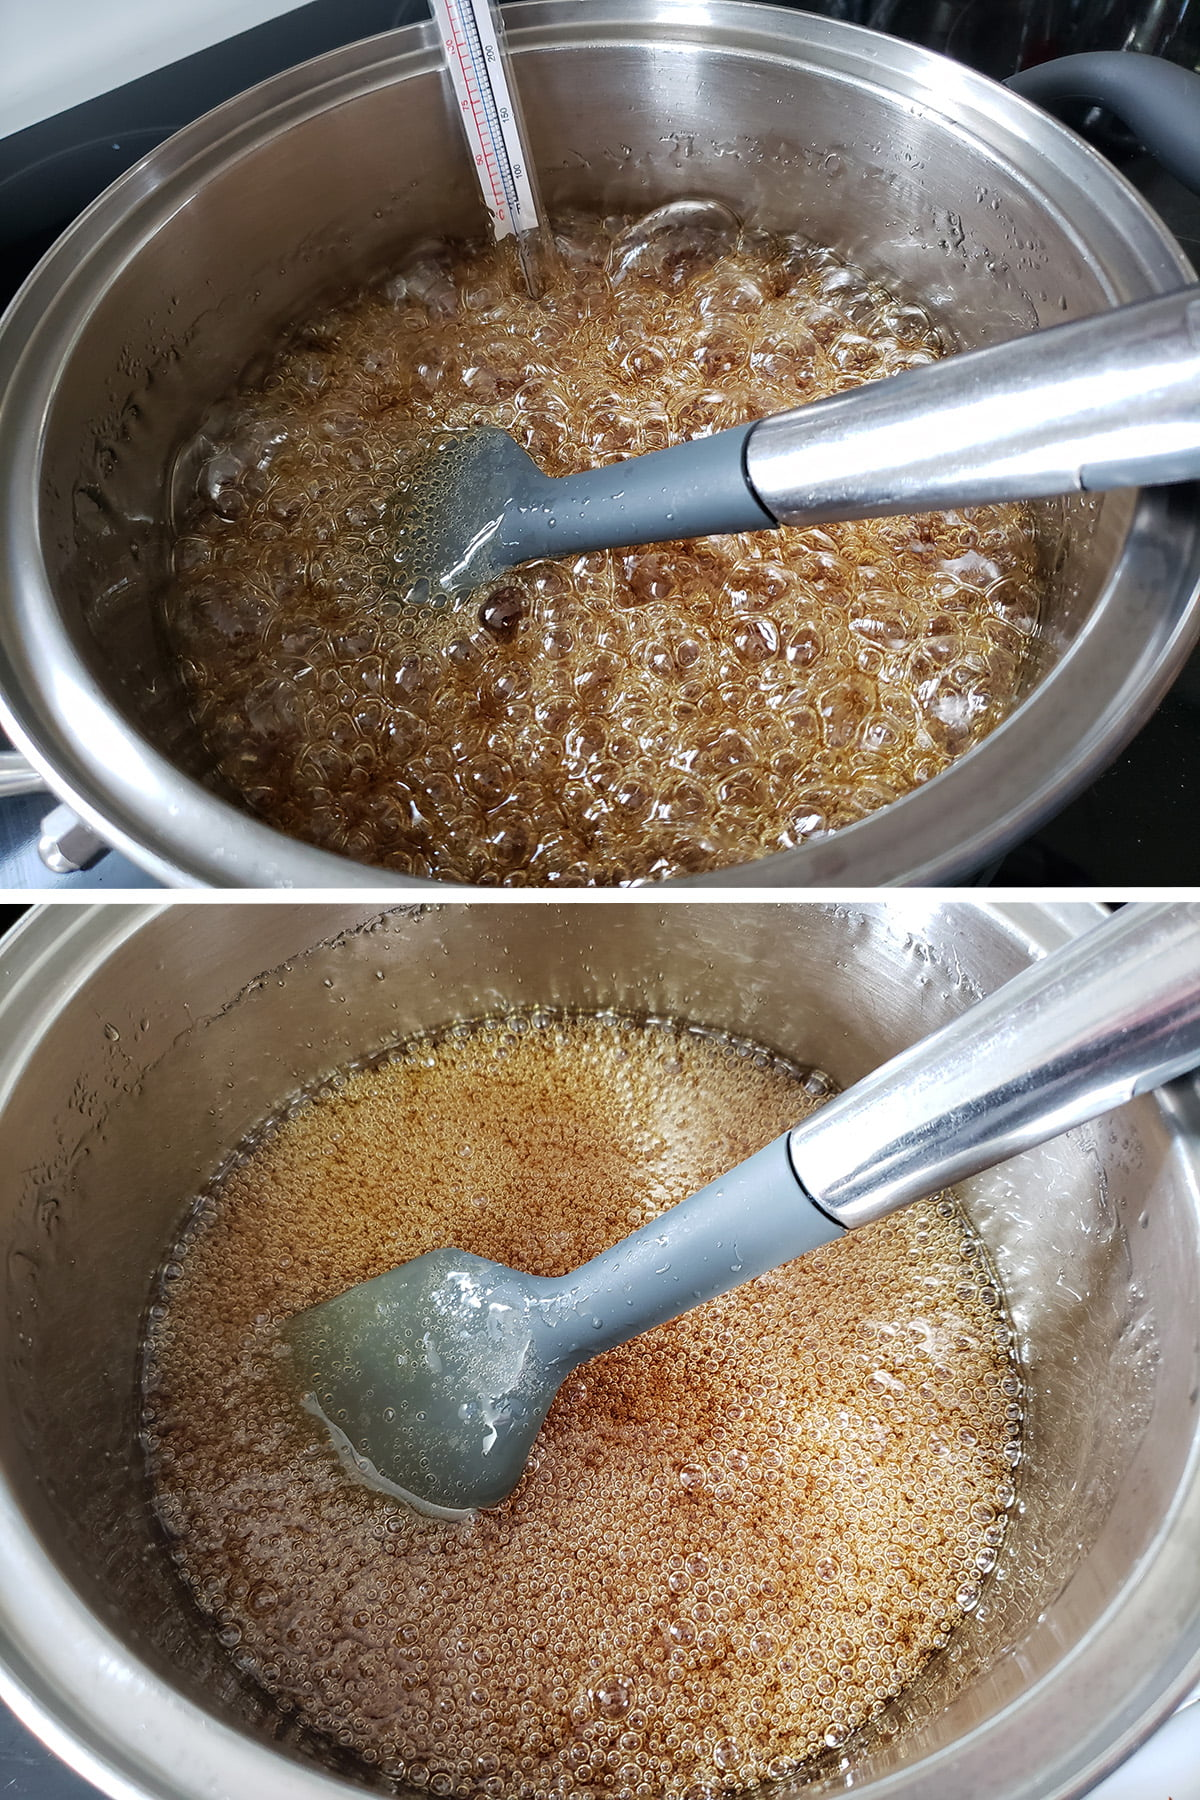 A two part compilation image showing boiling caramel in a pot.